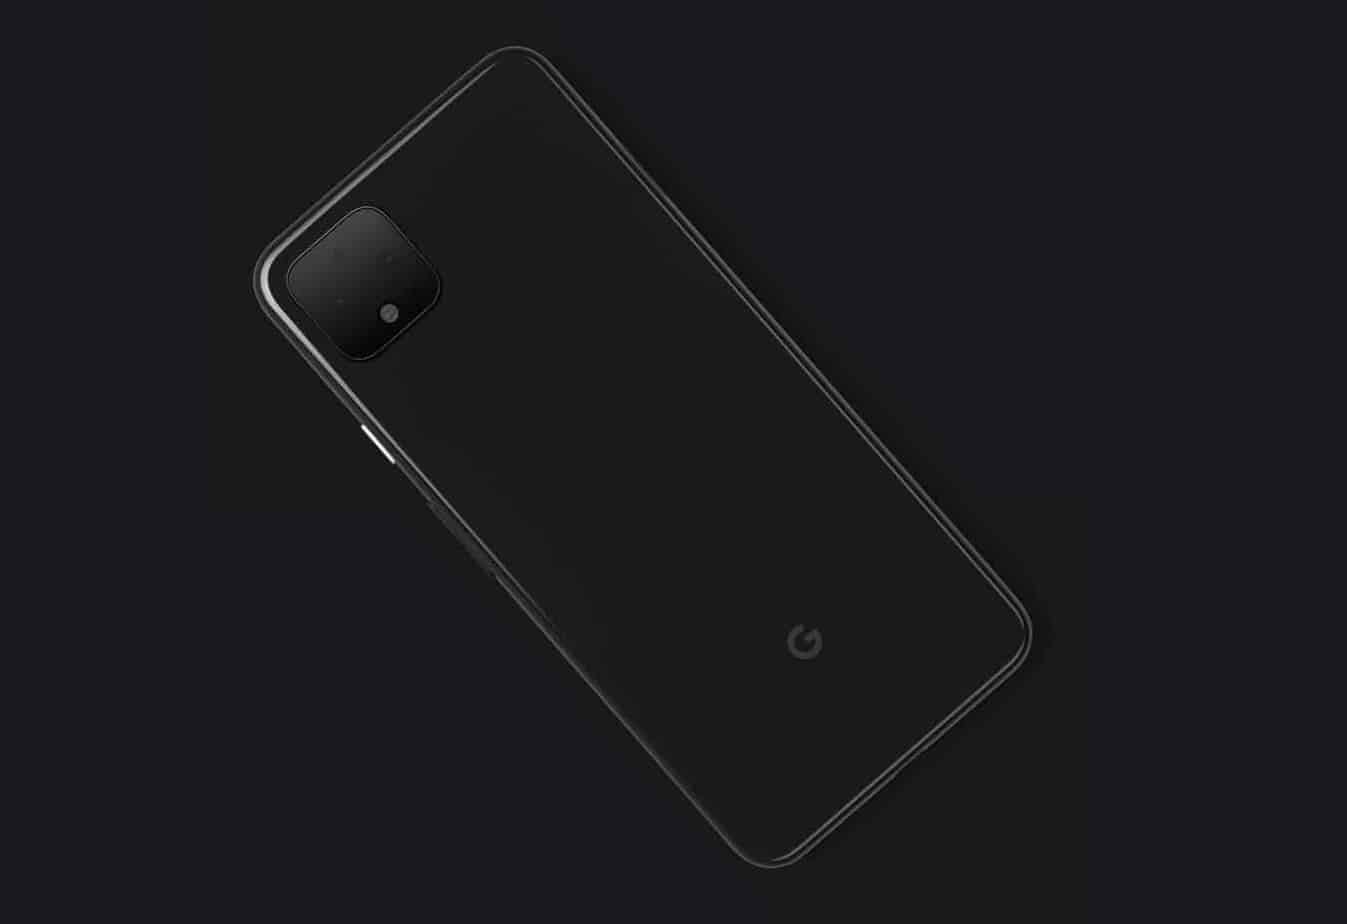 Putting Pixel 4 Leaks Together